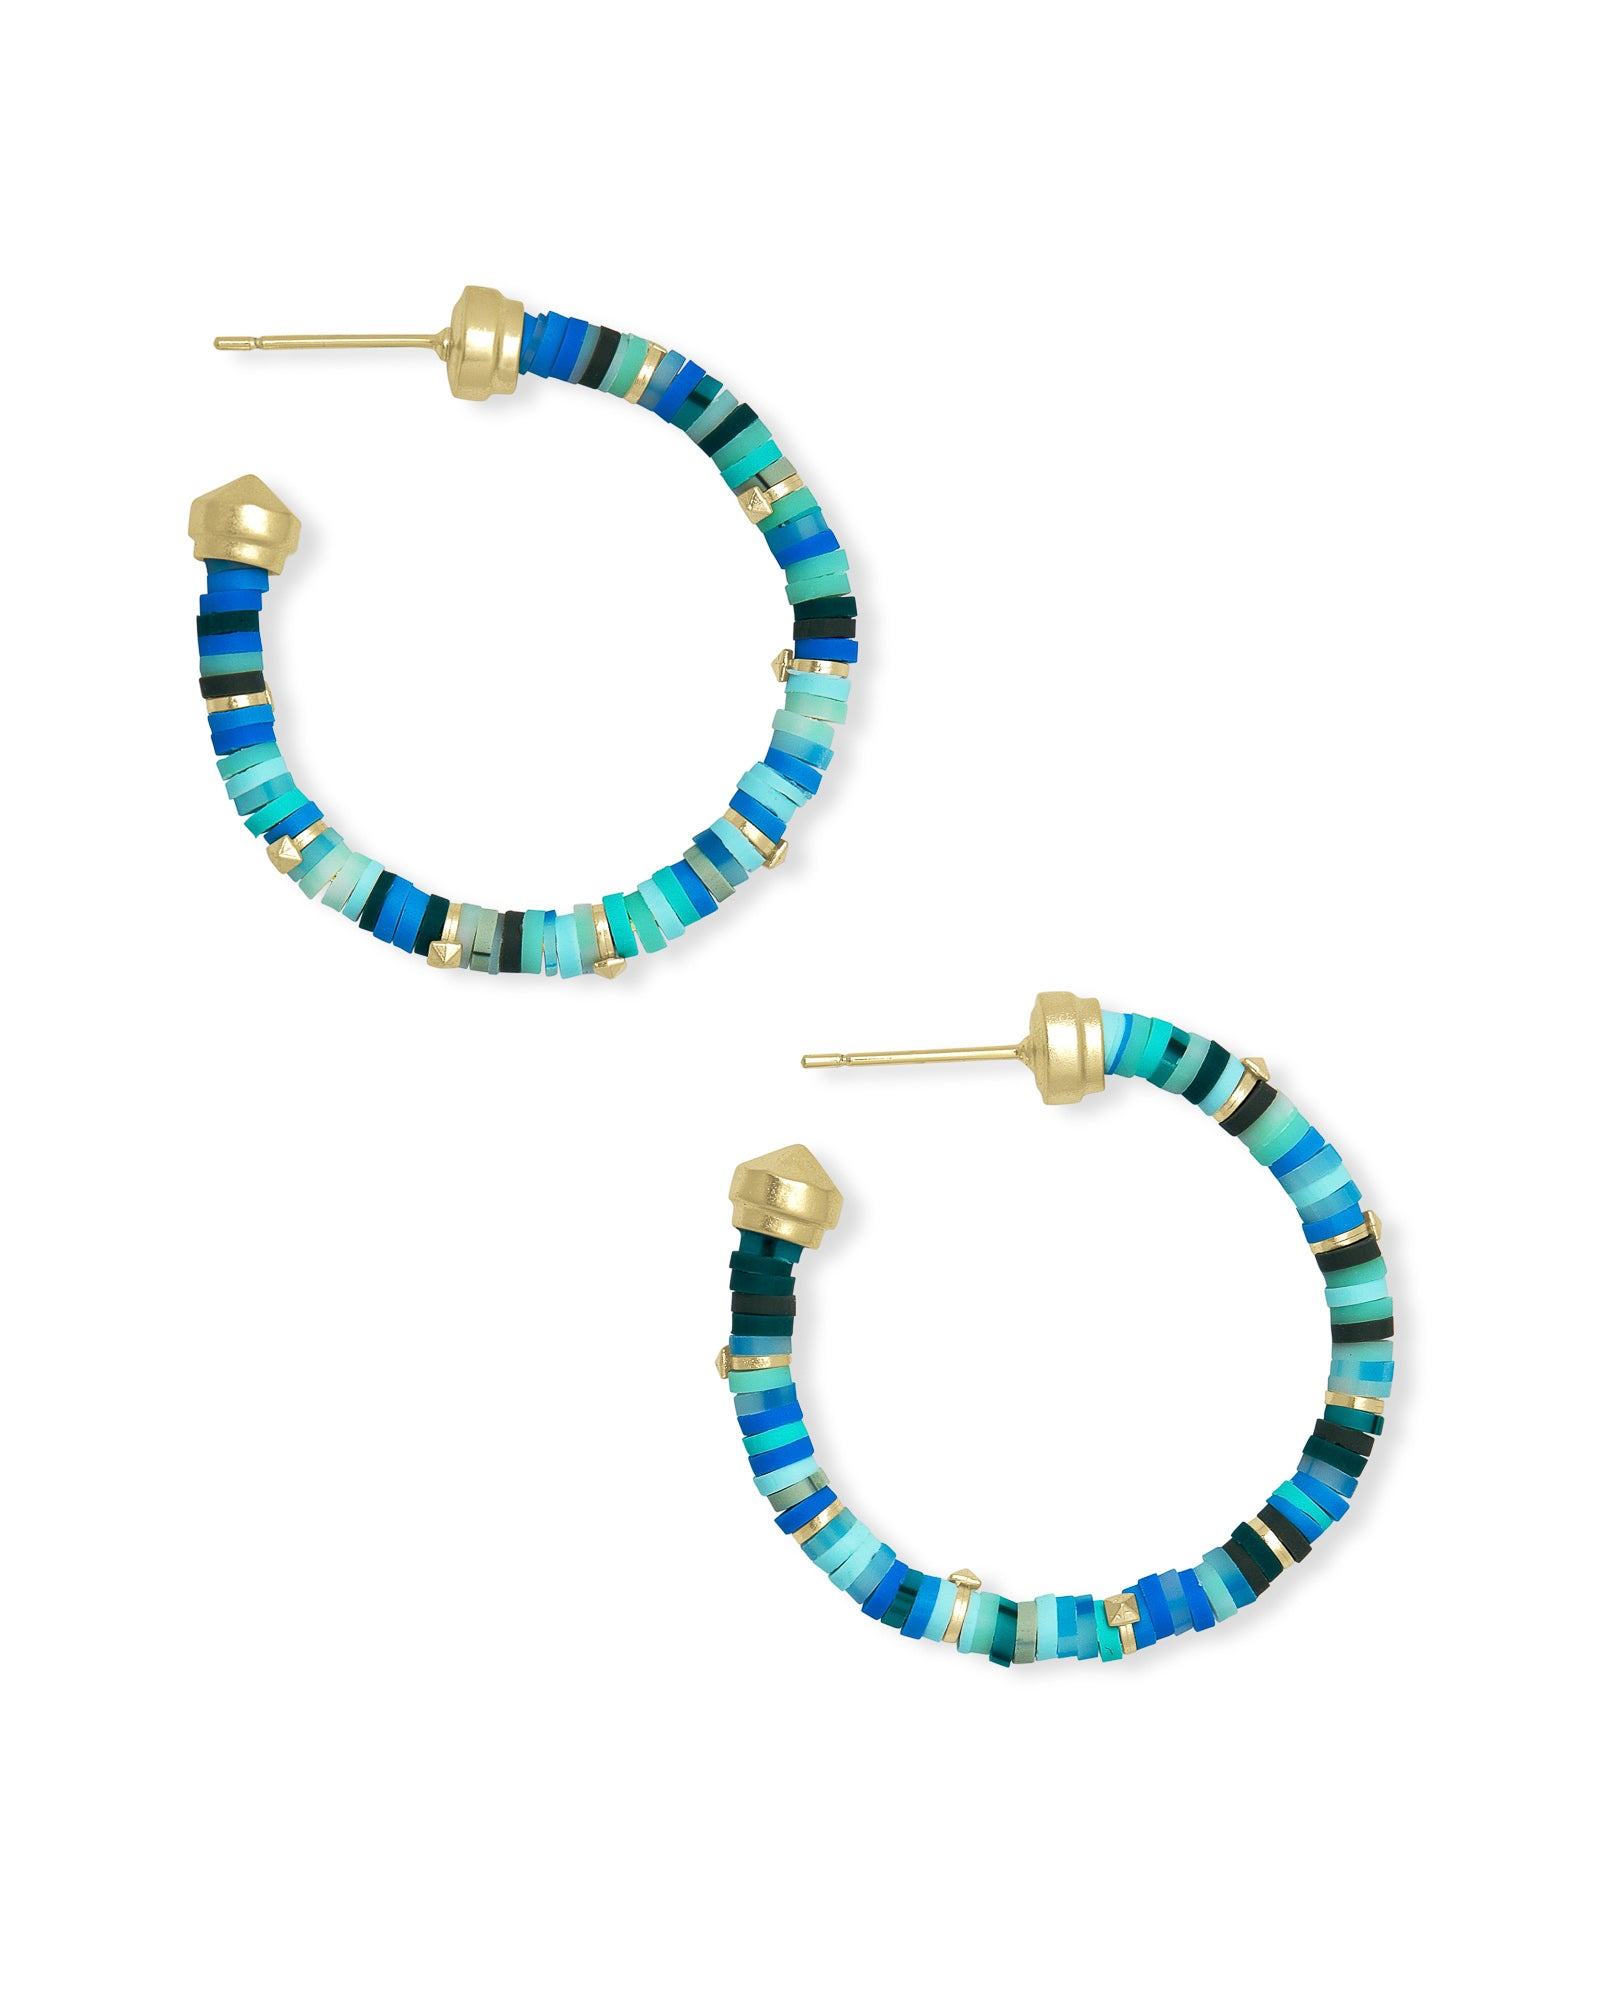 Kendra Scott Reece Gold Small Hoop Earrings In Sea Green Mix